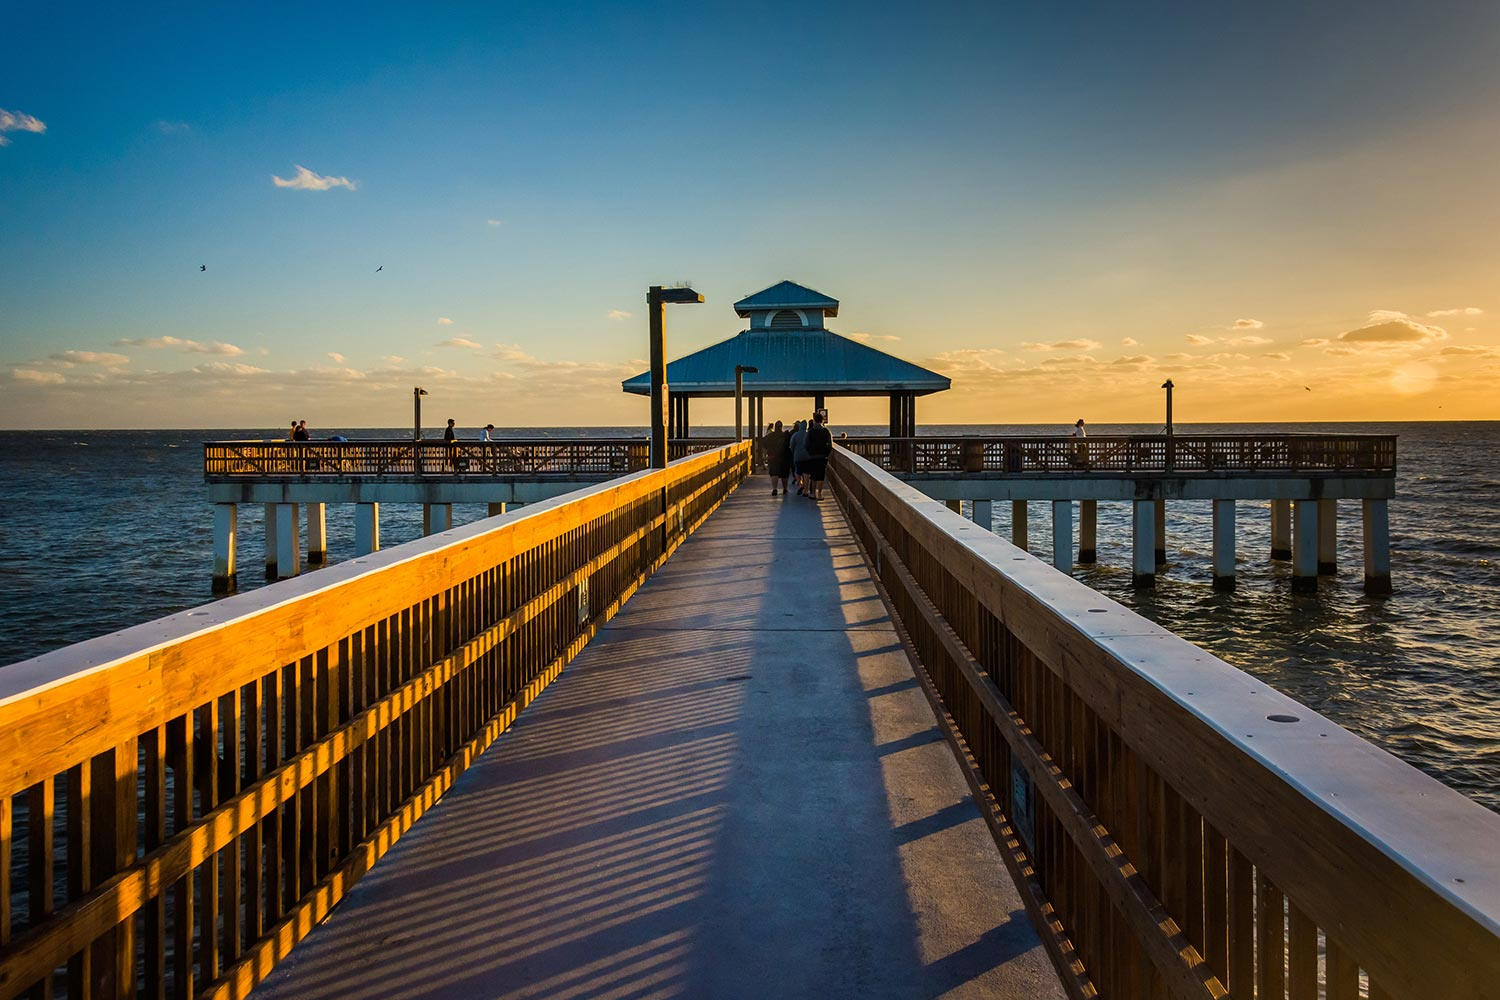 Sunset on a wooden pier with railings leading into the water in Fort Myers